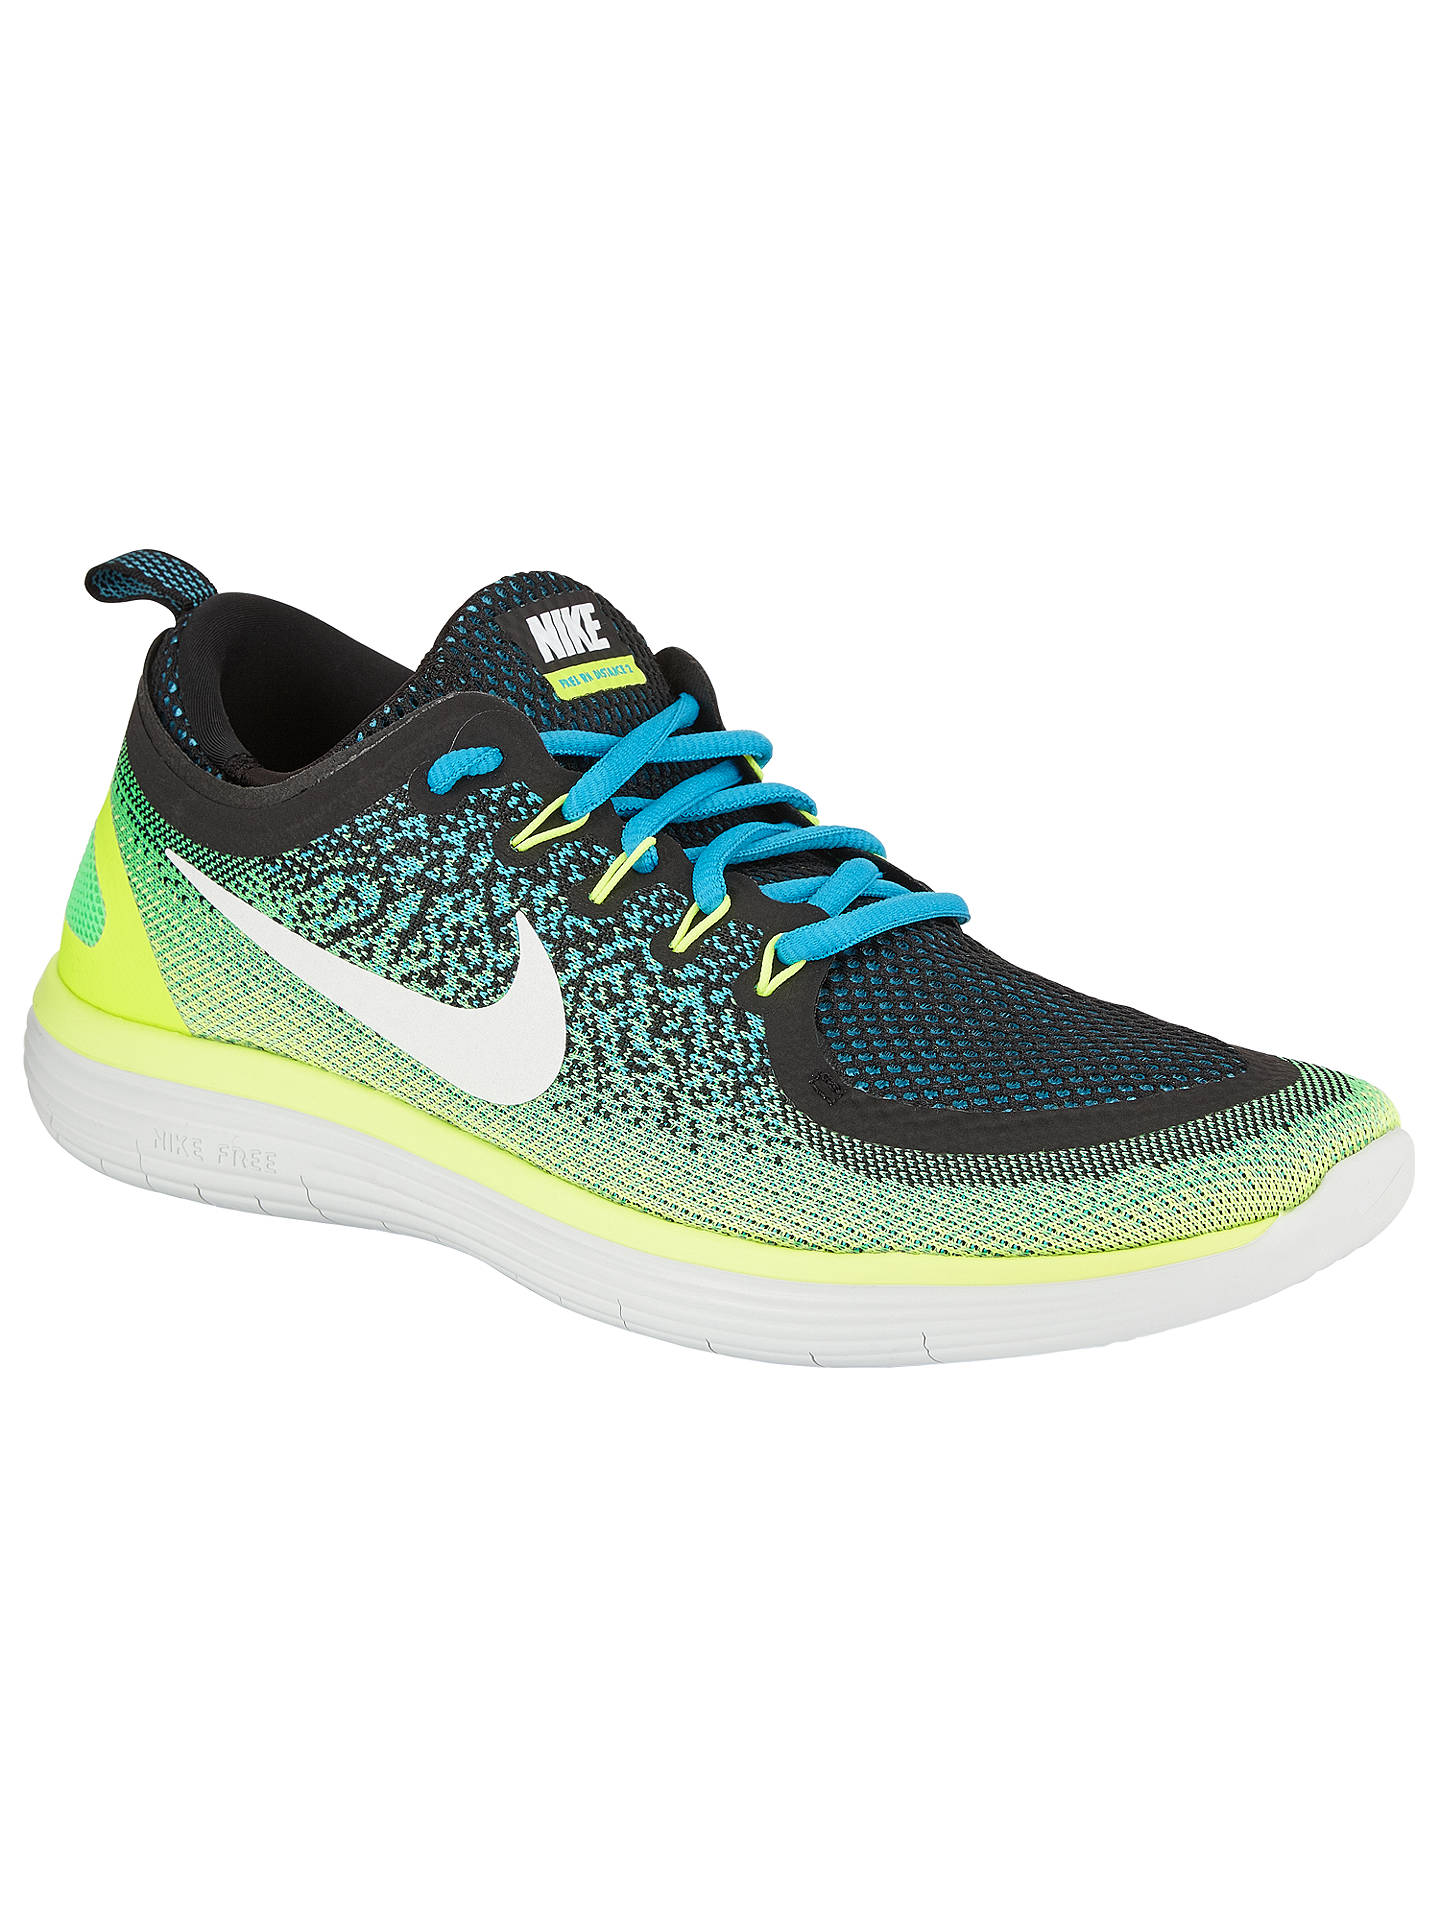 bffed0e509034 Nike Free RN Distance 2 Men's Running Shoes, Blue at John Lewis ...